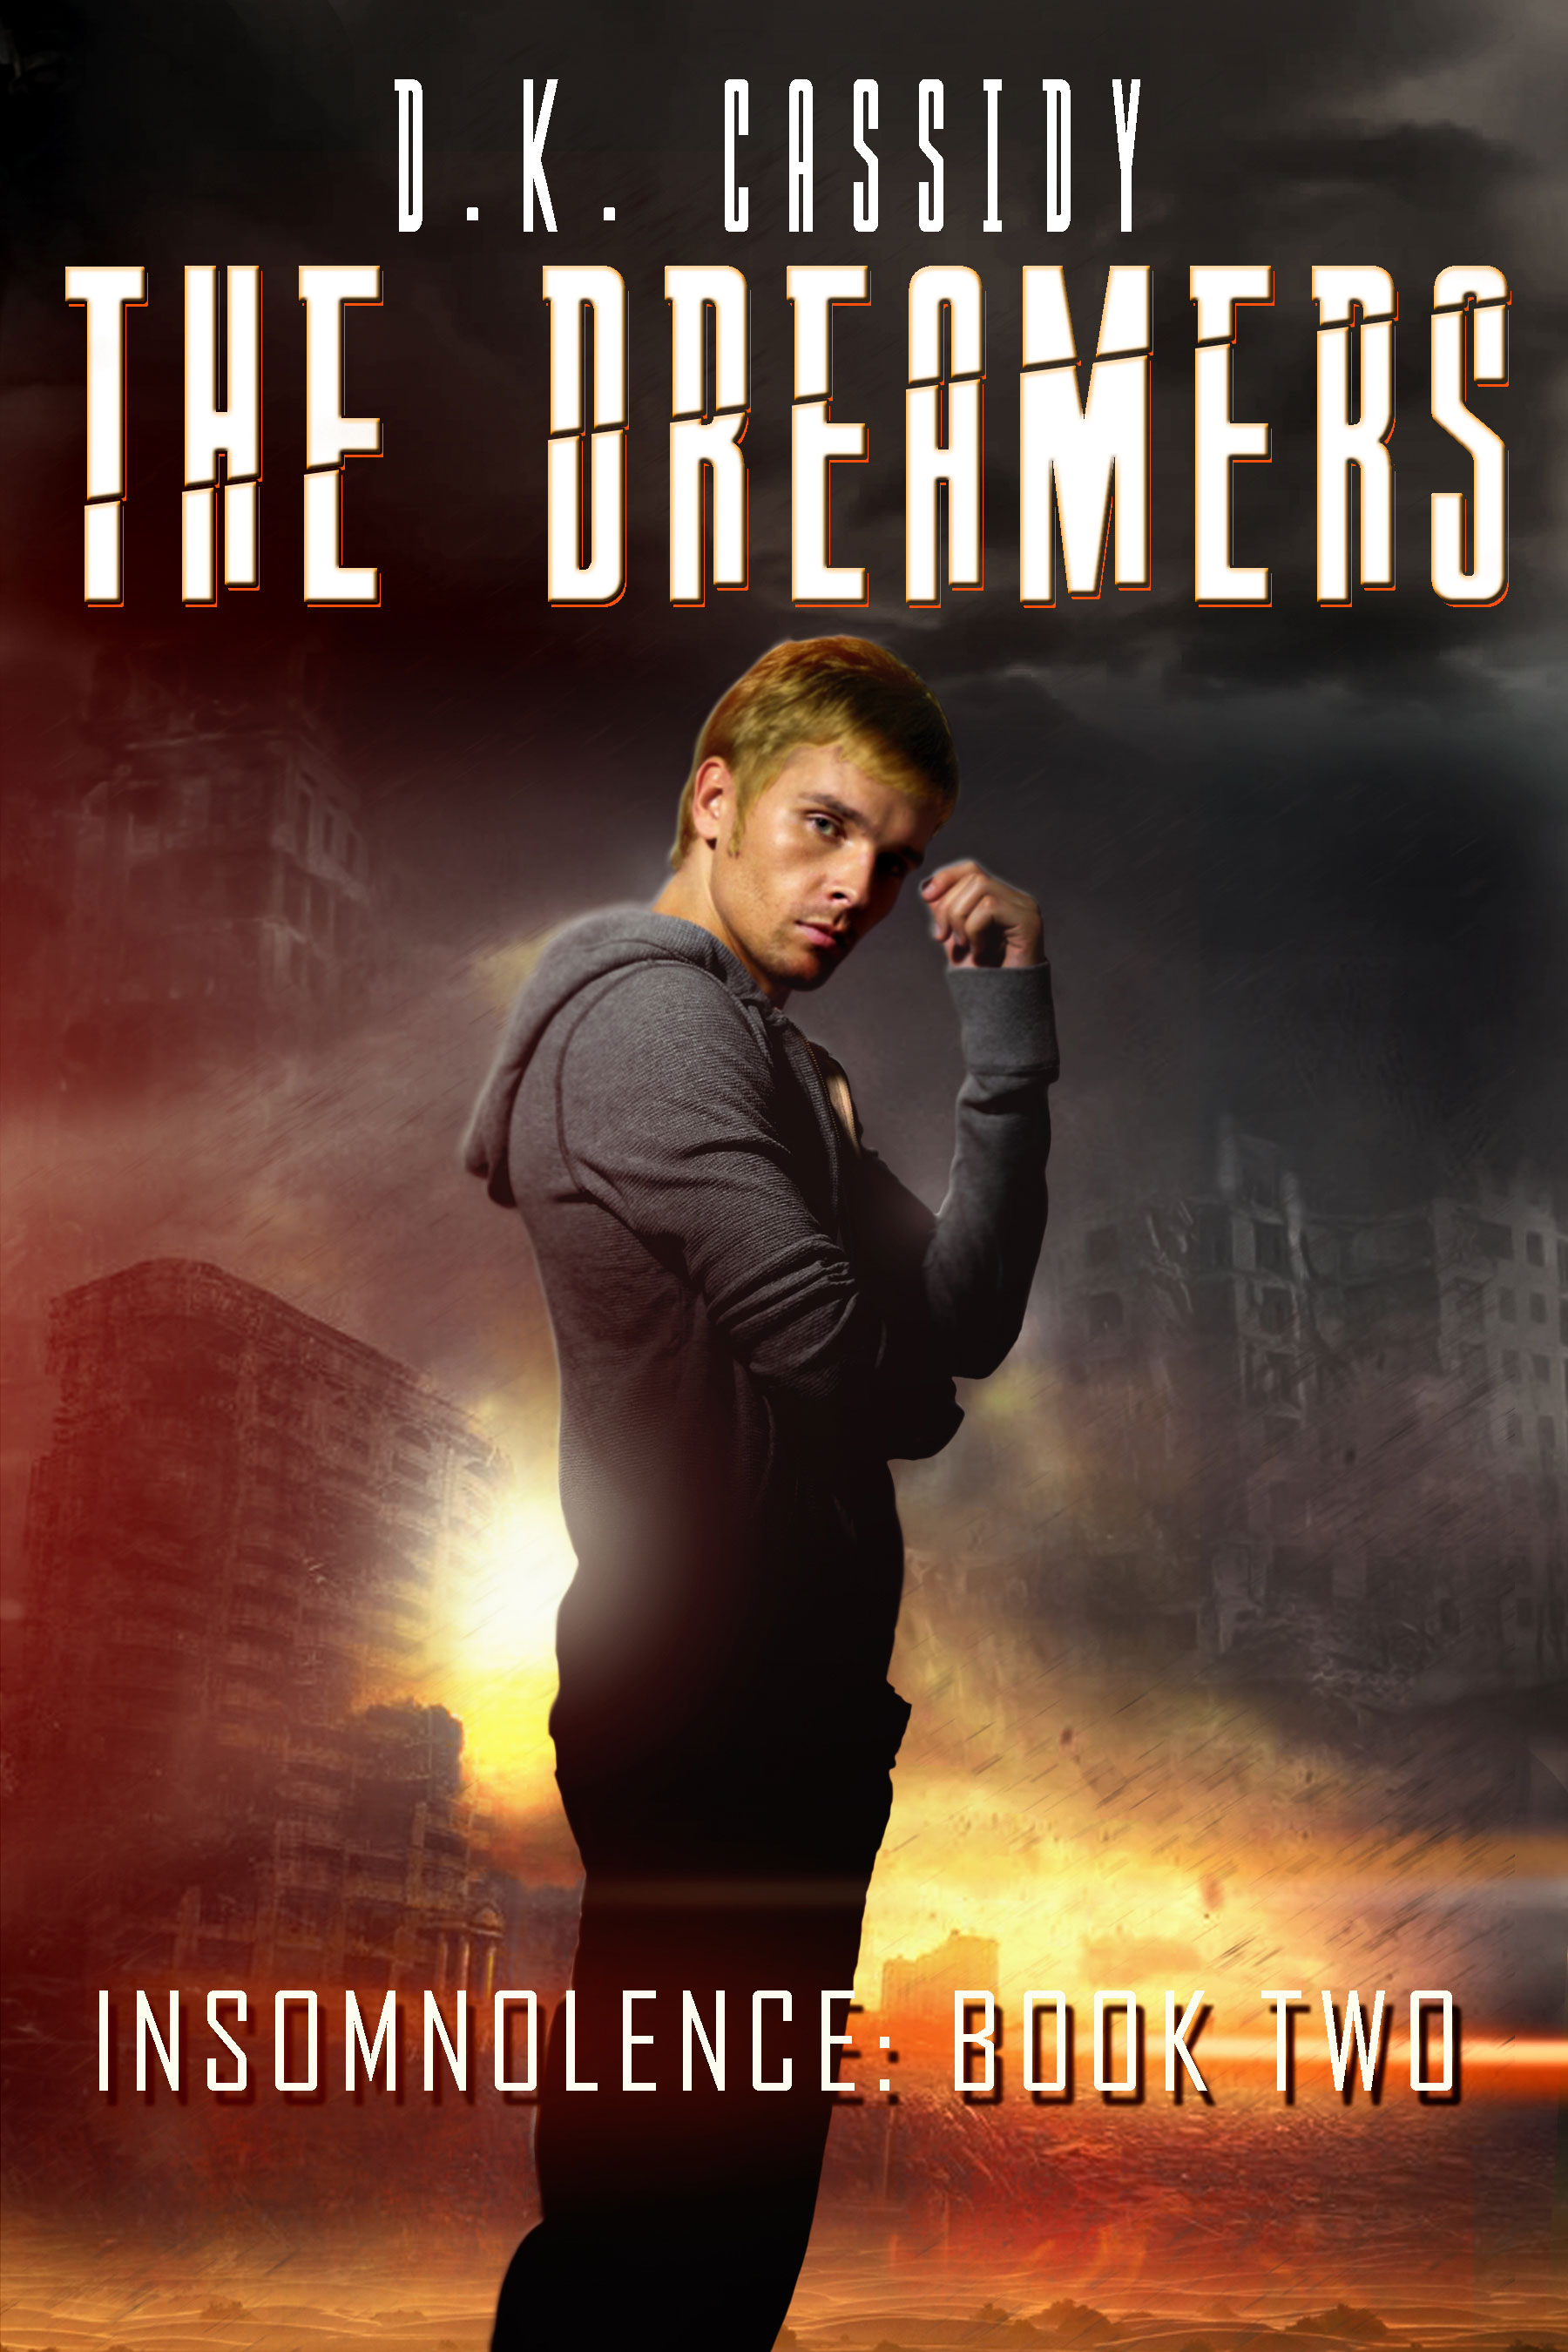 The Dreamers, Insomnolence Book 2 by D.K. Cassidy